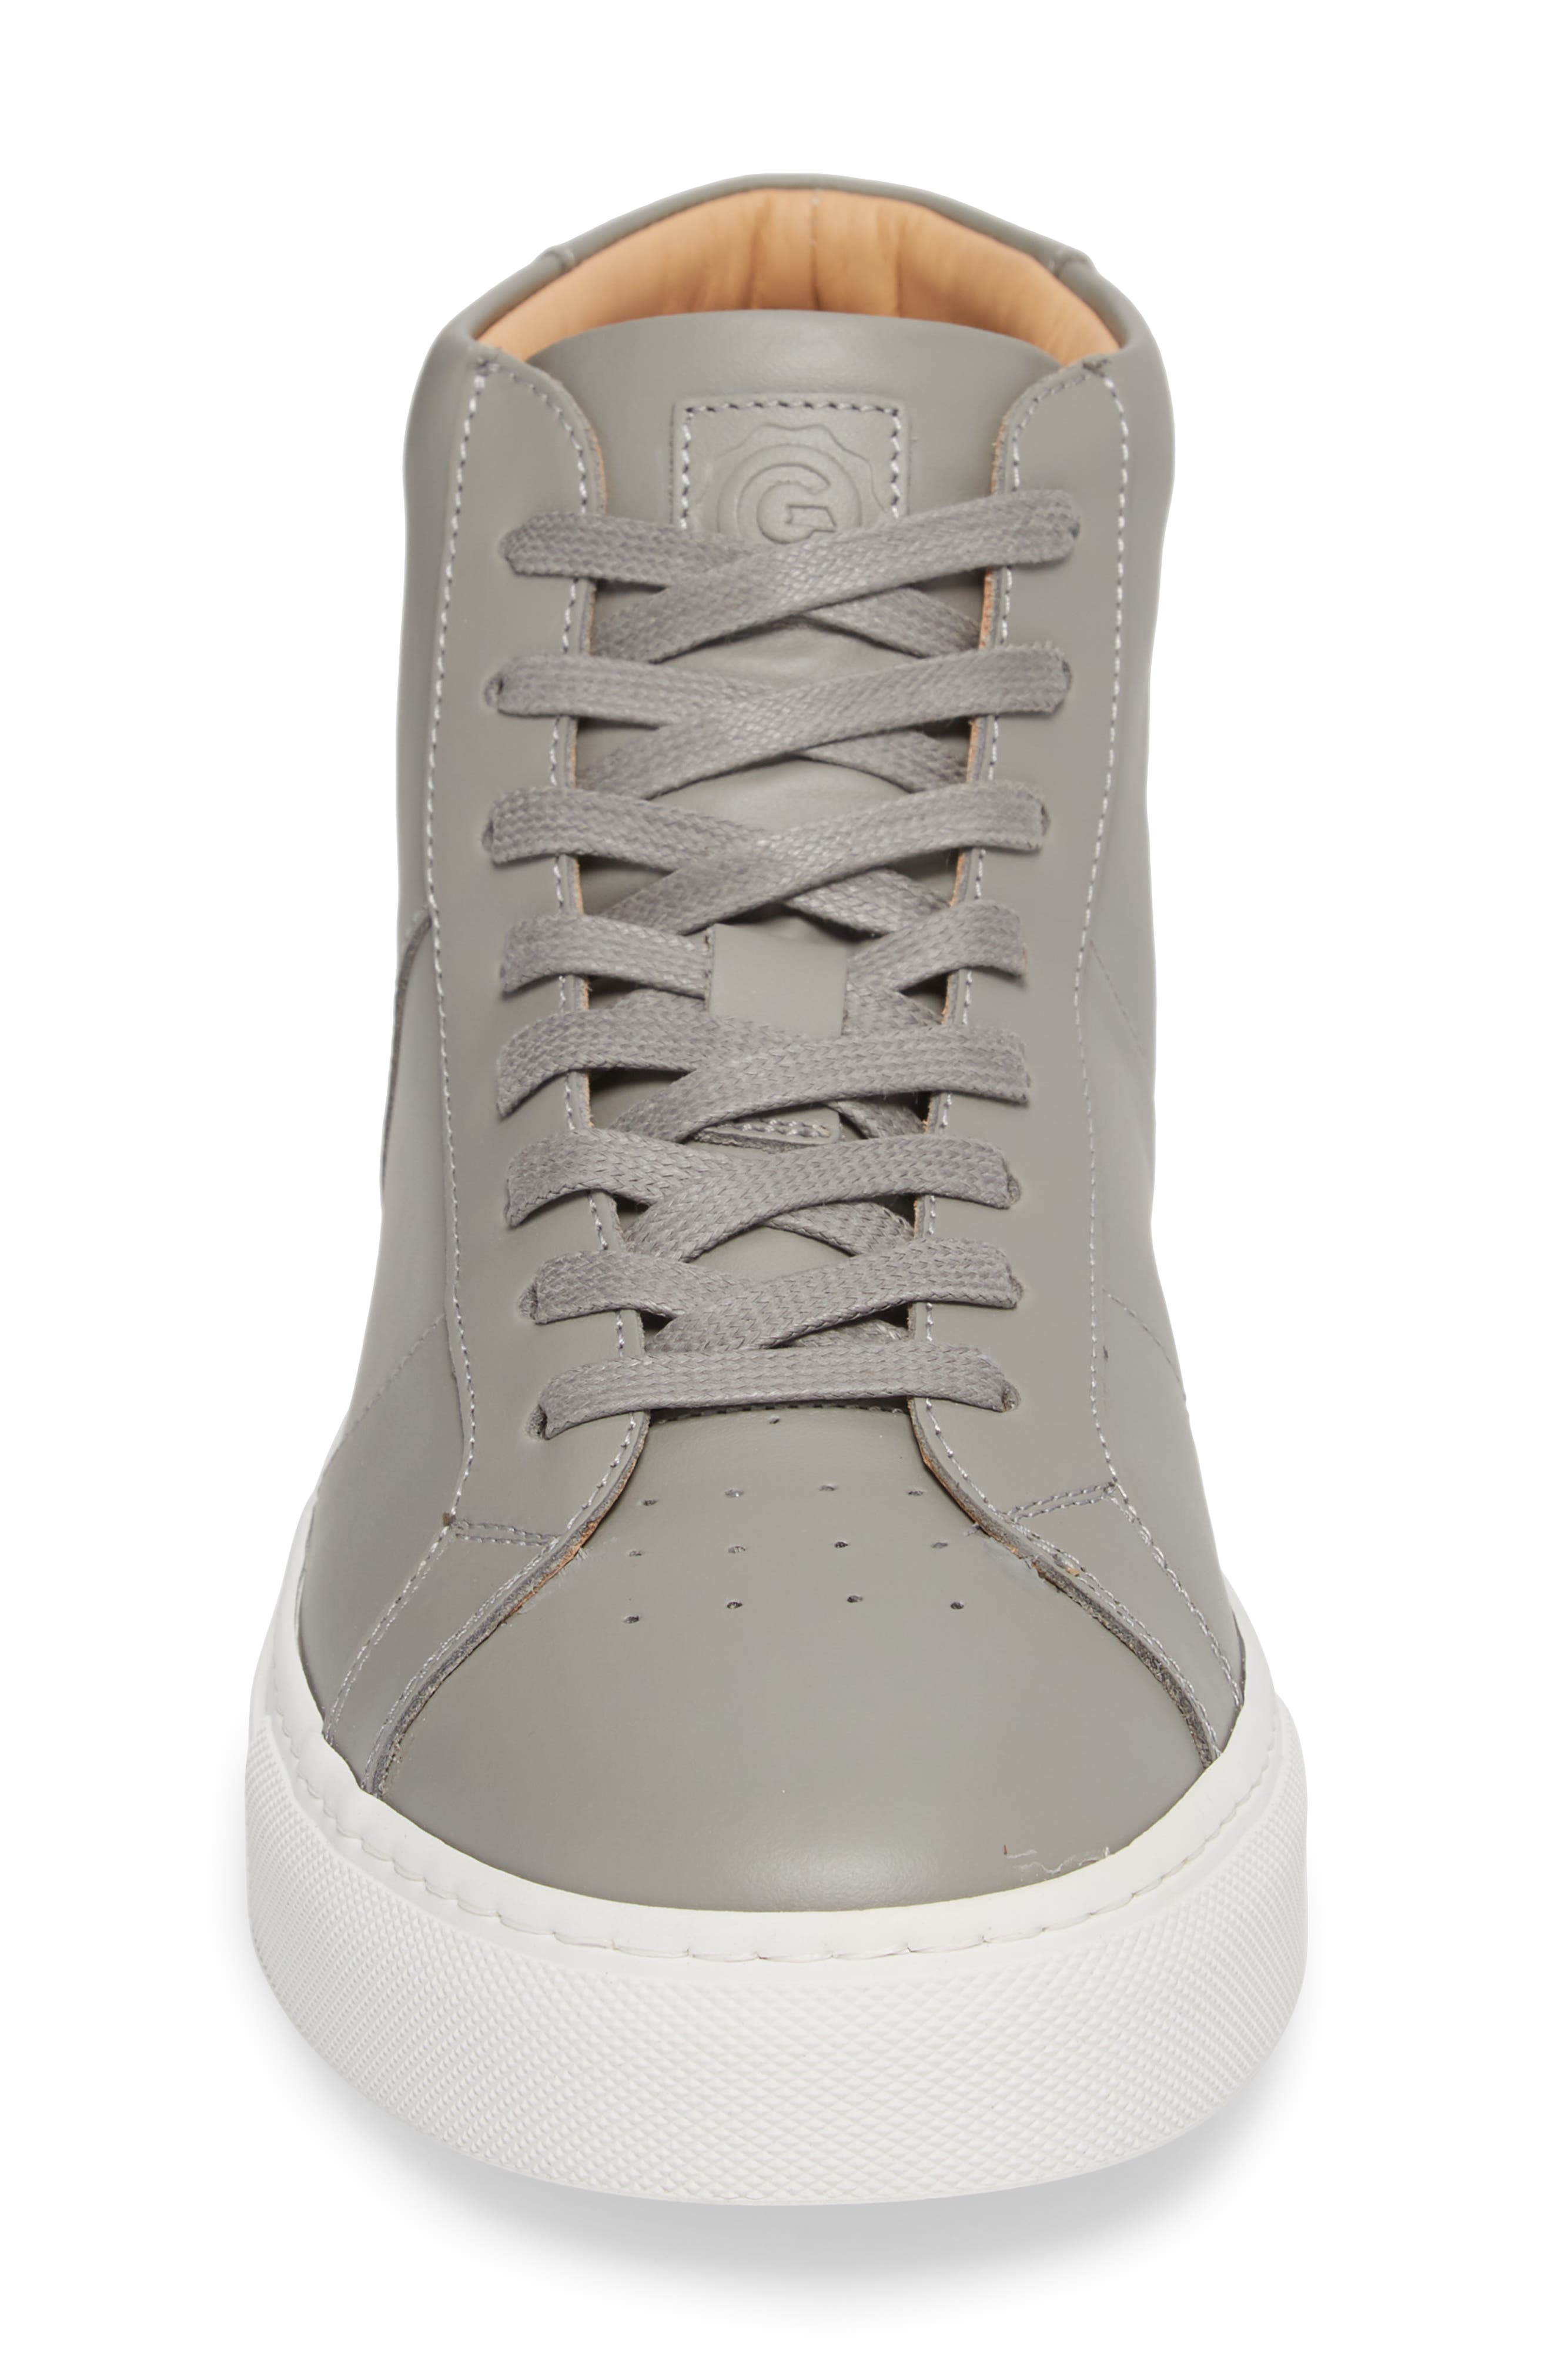 Royale High Top Sneaker,                             Alternate thumbnail 4, color,                             GREY LEATHER